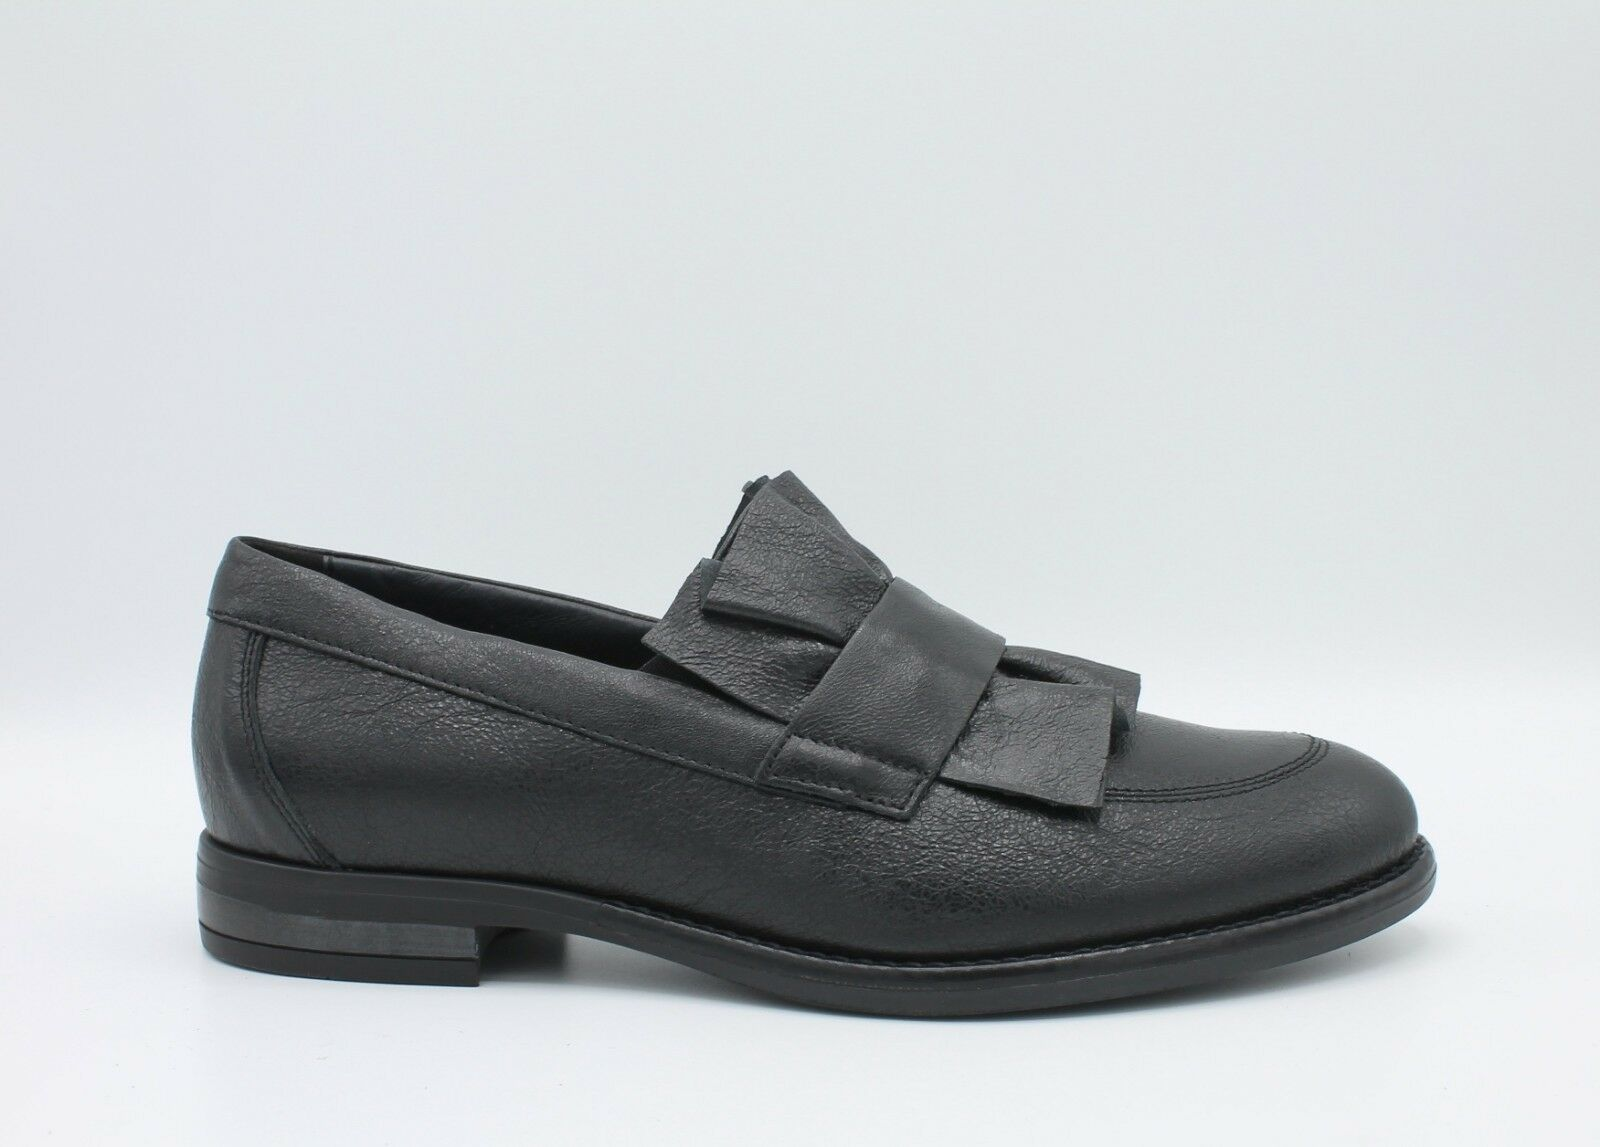 IGI & Co. WOMEN'S SHOES LOAFERS FOOTWEAR LEATHER LEATHER LEATHER BLACK FRILLY 2183100 df5aa4